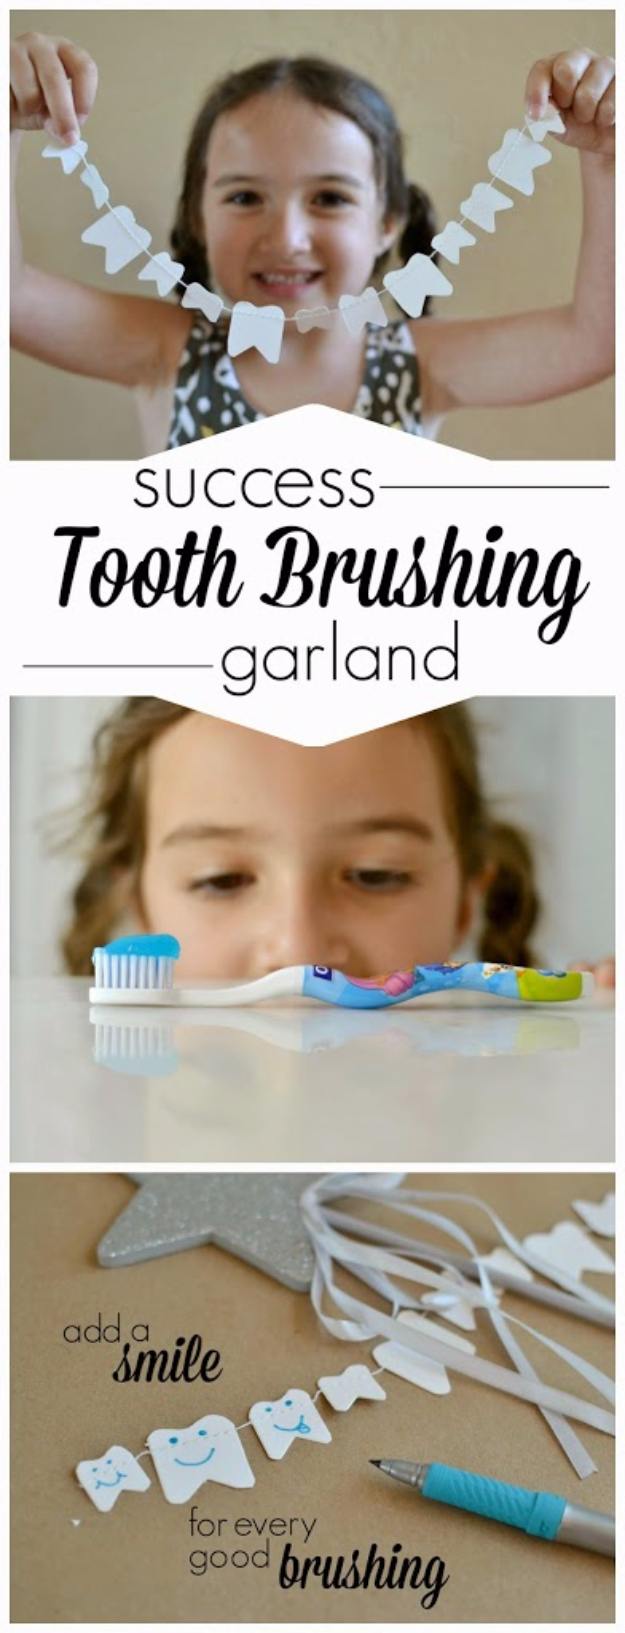 32 DIY Parenting Hacks - DIY Tooth Brushing Success Garland - Brilliant Parenting Hacks, Tips And Tricks That Will Make Parenting Easier, Parenting Made Fun, Genius Parenting Hacks Every Parent Should Know, Best Parenting Hacks, Extremely Clever Parenting Hacks http://diyjoy.com/diy-parenting-hacks